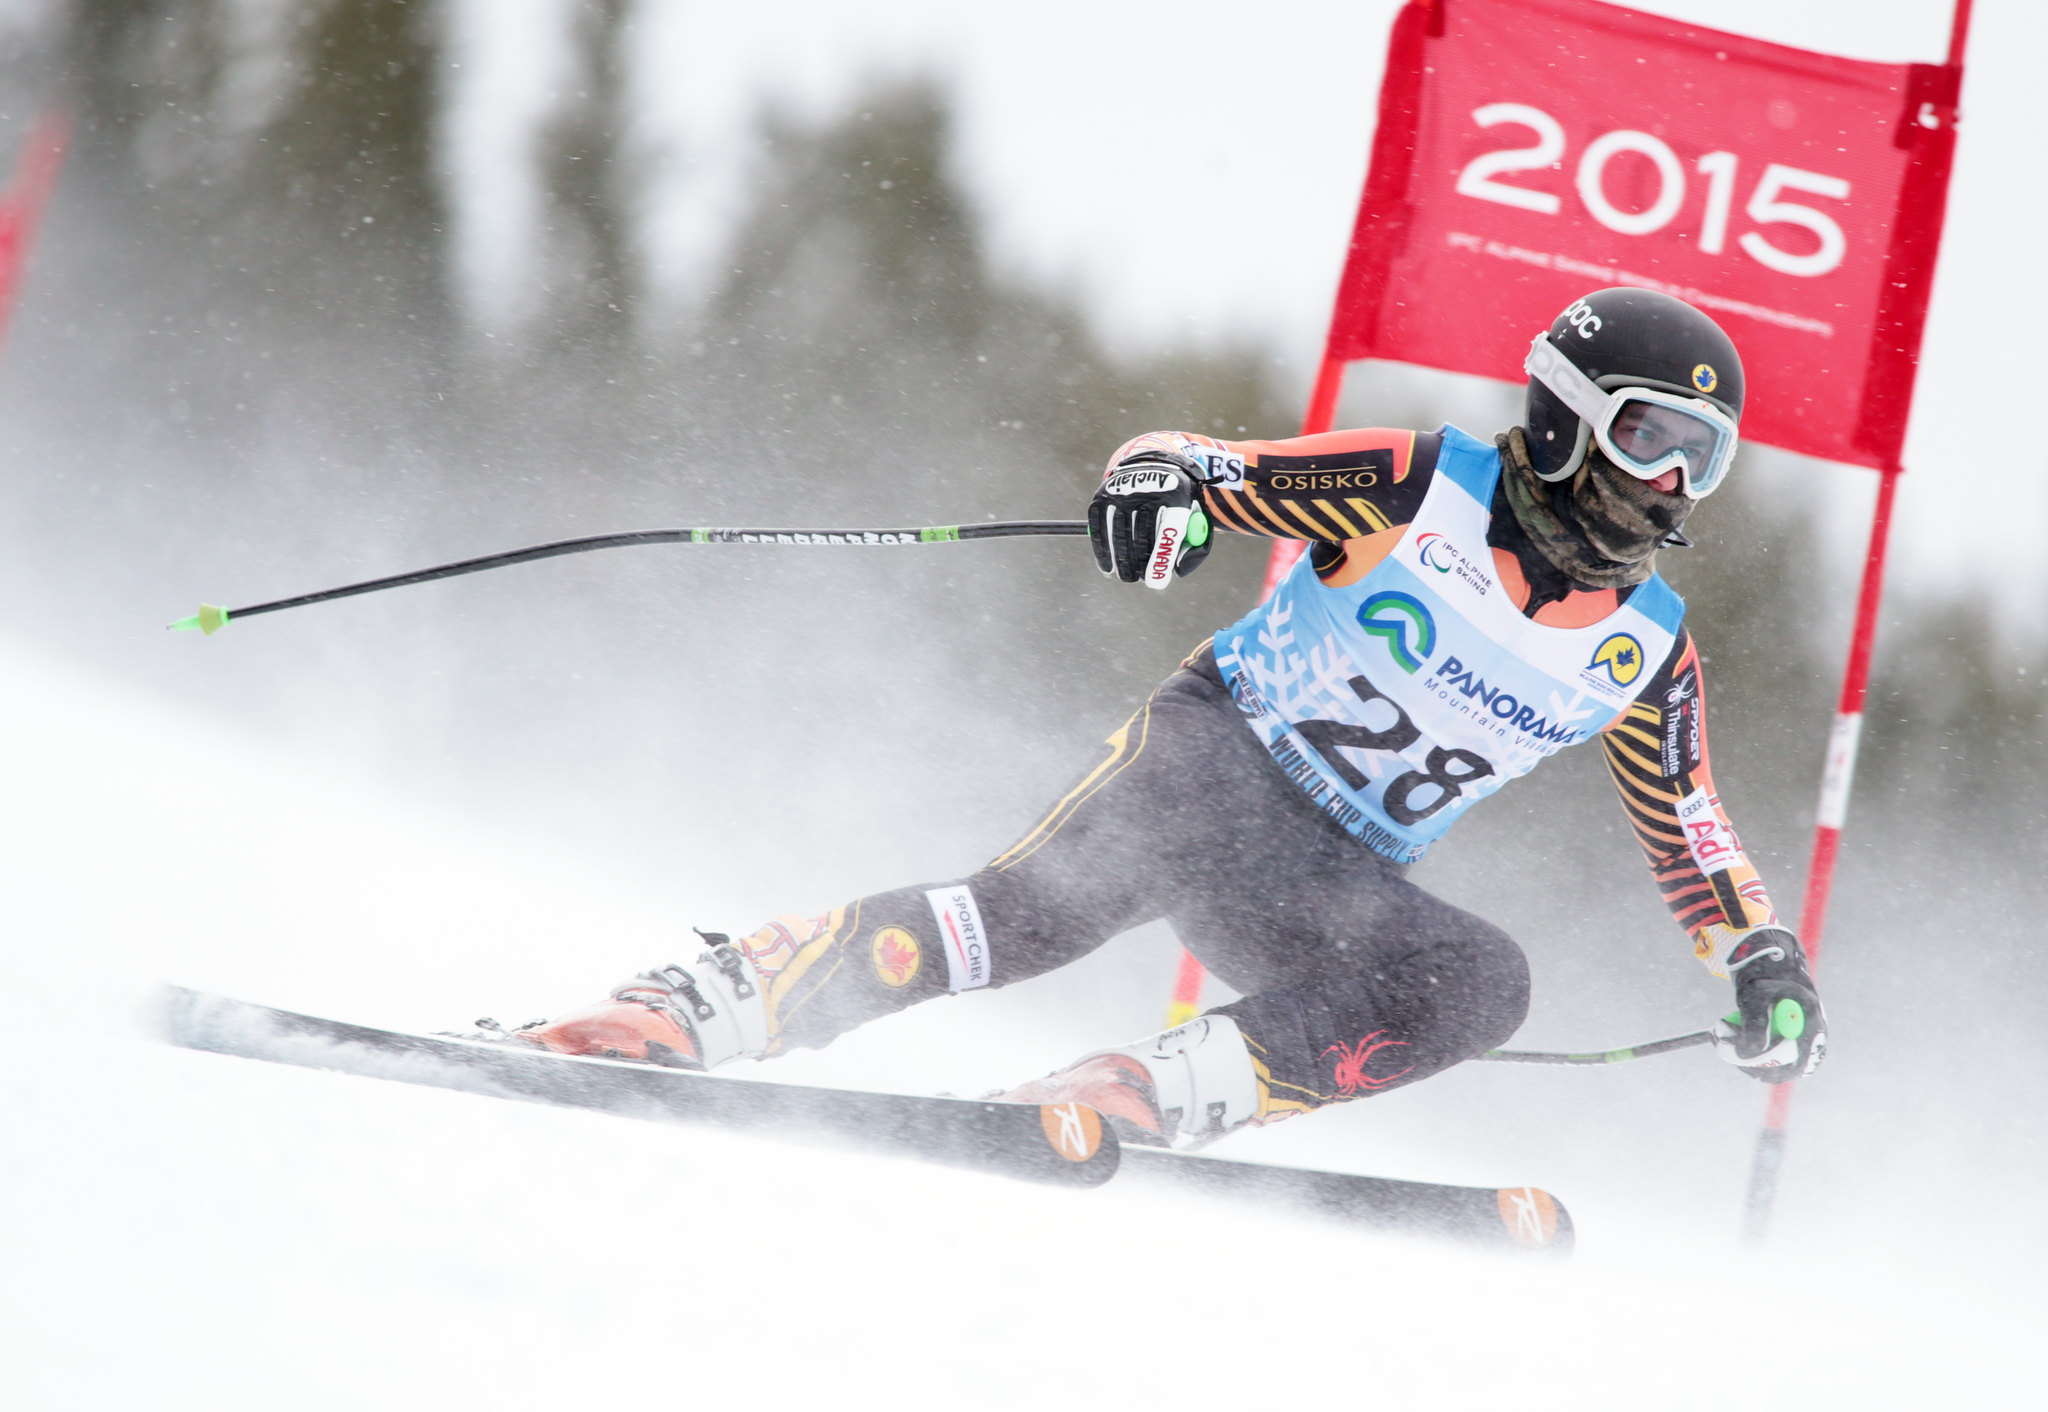 Mac Marcoux in action during the downhill in Panorama, CAN